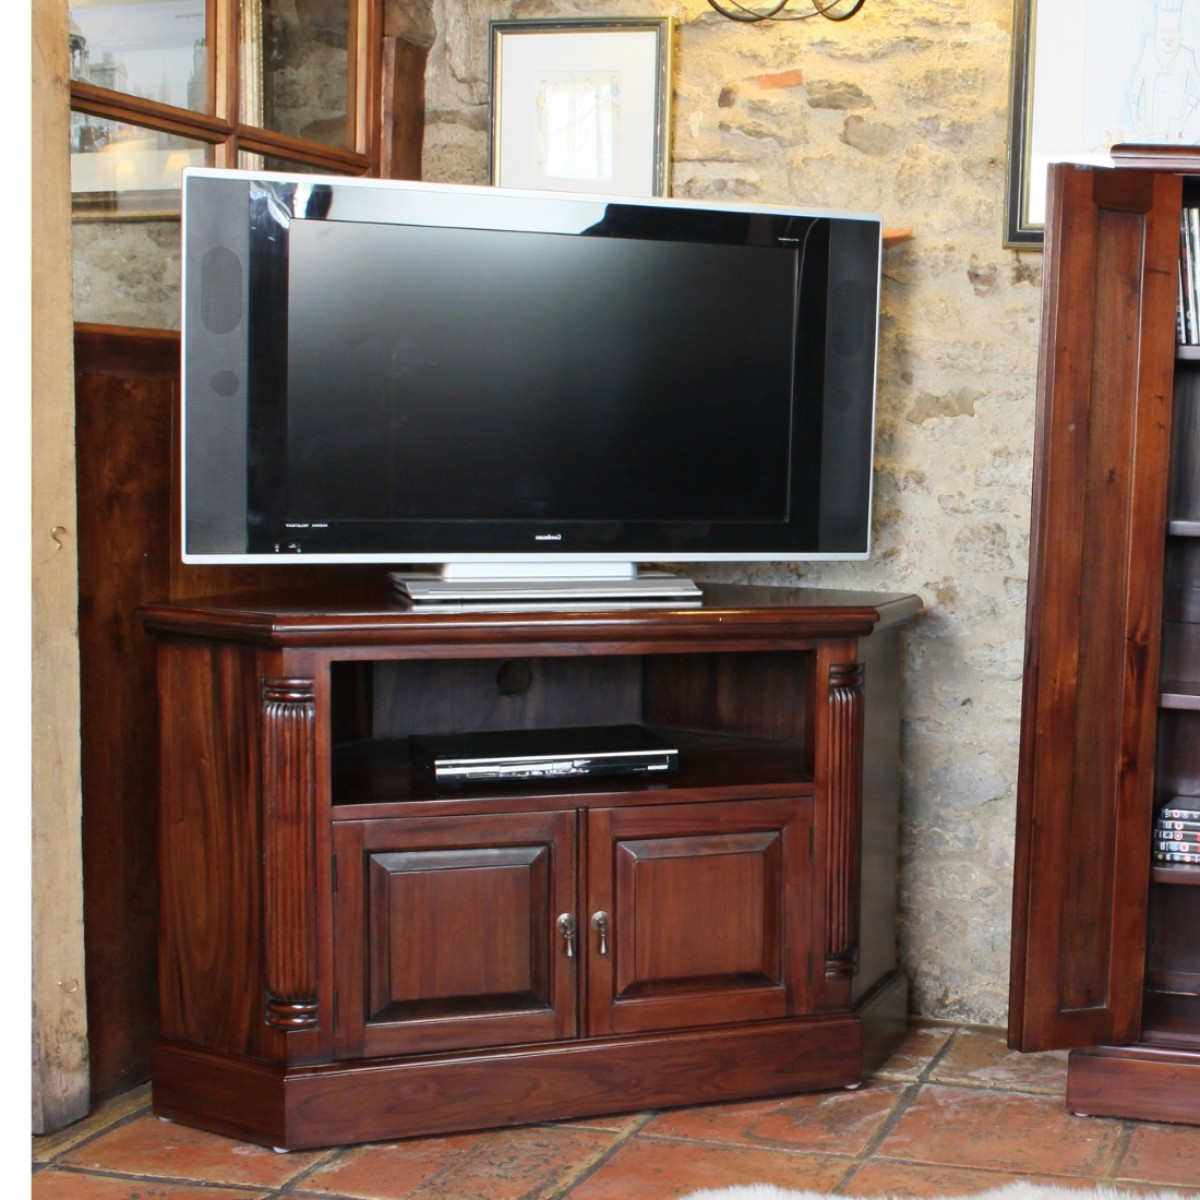 Latest Baumhaus La Roque Mahogany Corner Tv Cabinet Imr09B Intended For Mahogany Corner Tv Cabinets (Gallery 16 of 20)